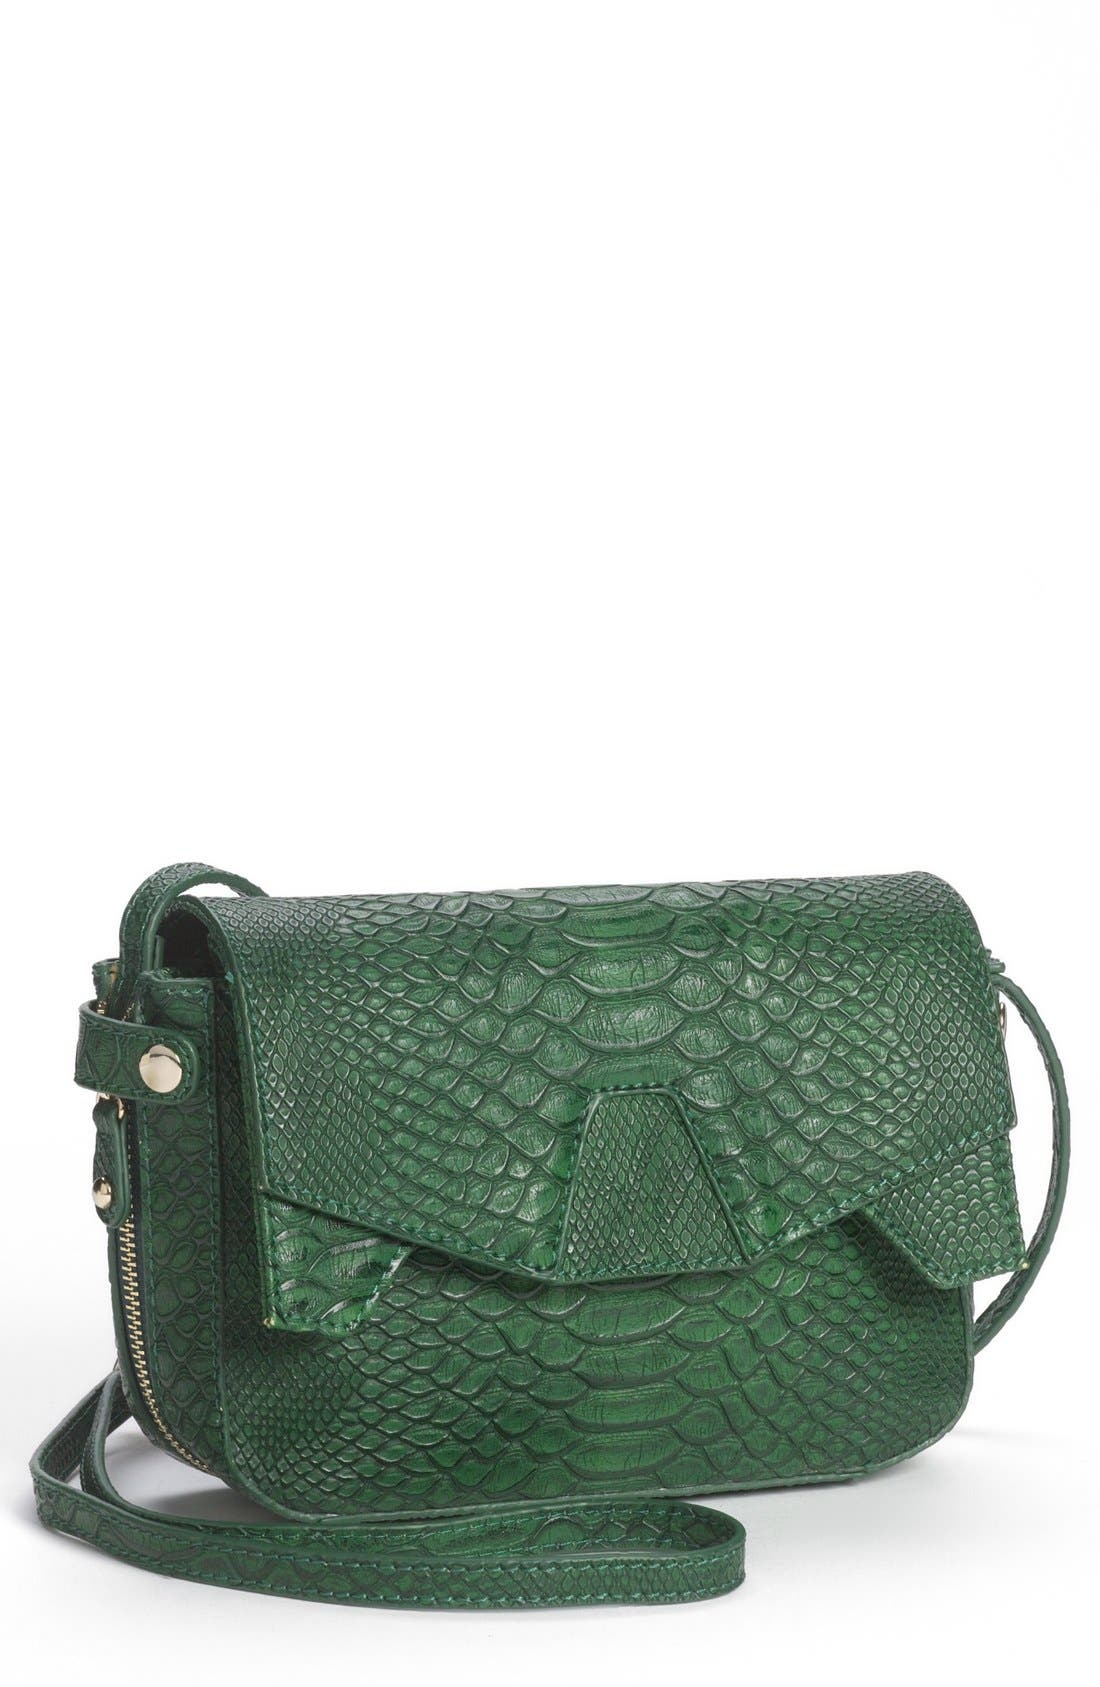 Alternate Image 1 Selected - Emperia 'Small' Embossed Faux Leather Crossbody Bag (Juniors) (Online Only)